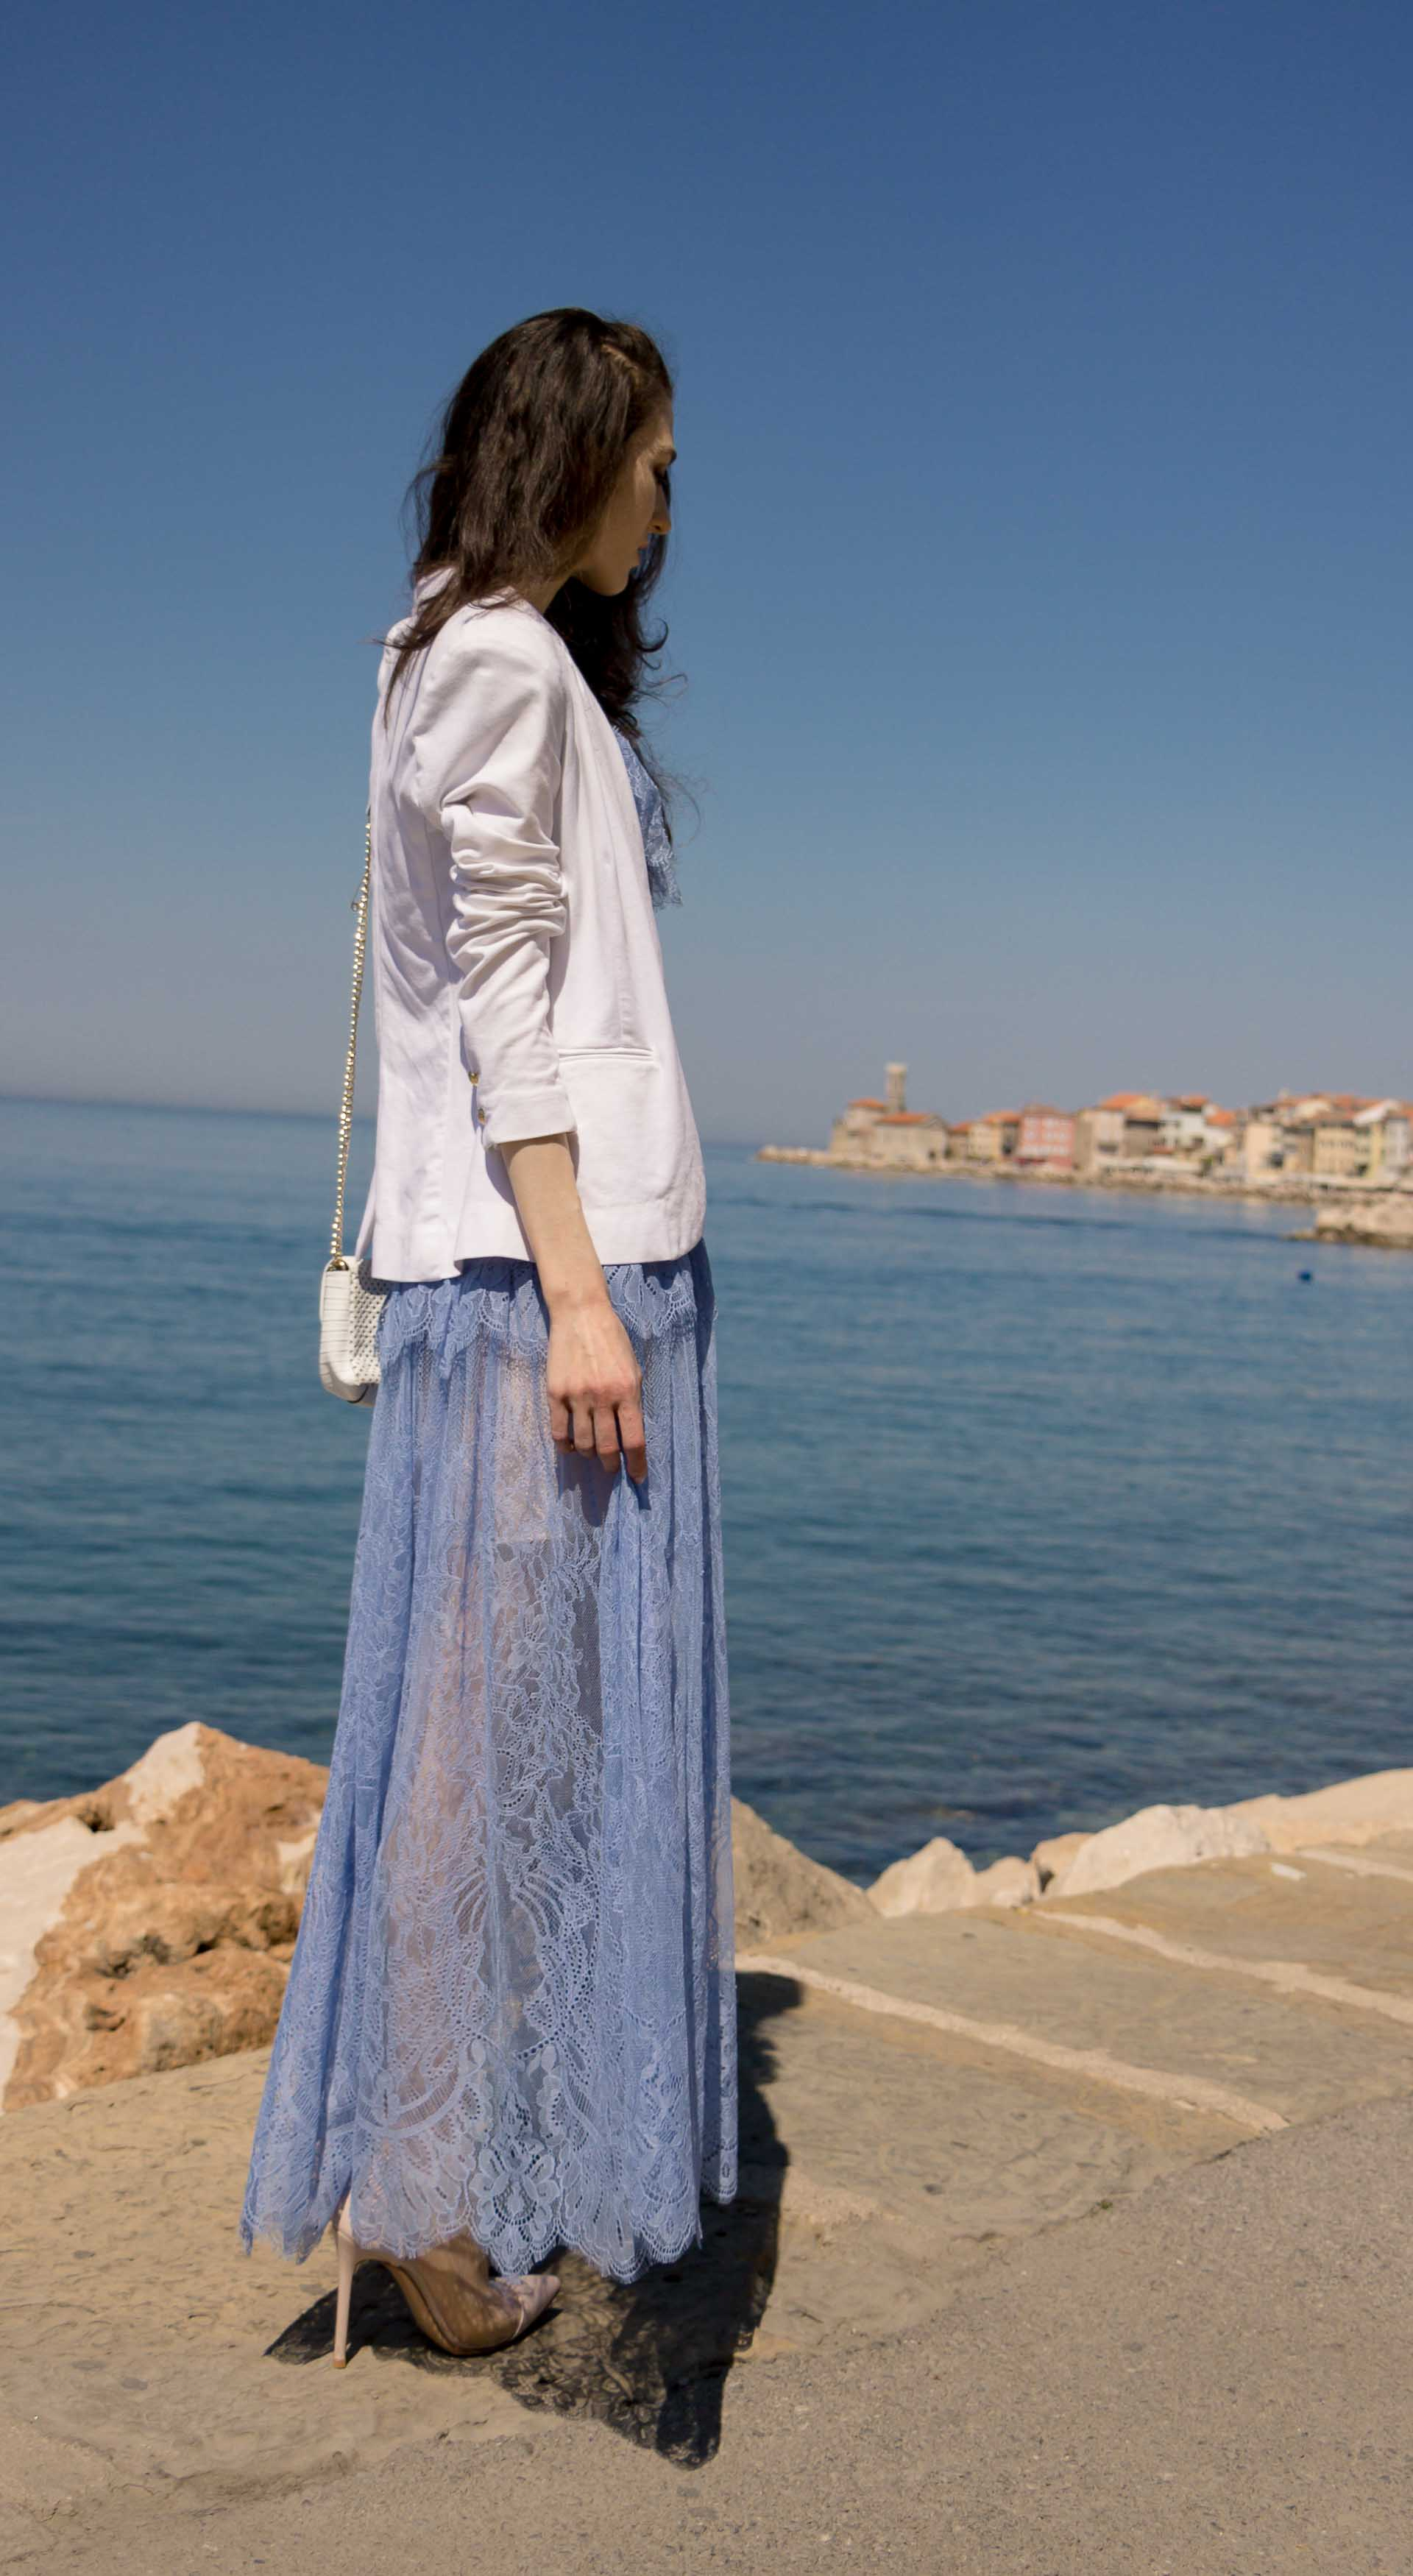 Veronika Lipar Fashion Blogger of Brunette from Wall Street wearing Self-Portrait blue lace midi dress, white single button blazer, blush Gianvito Rossi plexi pumps, white shoulder bag, Lespecs white cat eye sunglasses while looking at the ocean